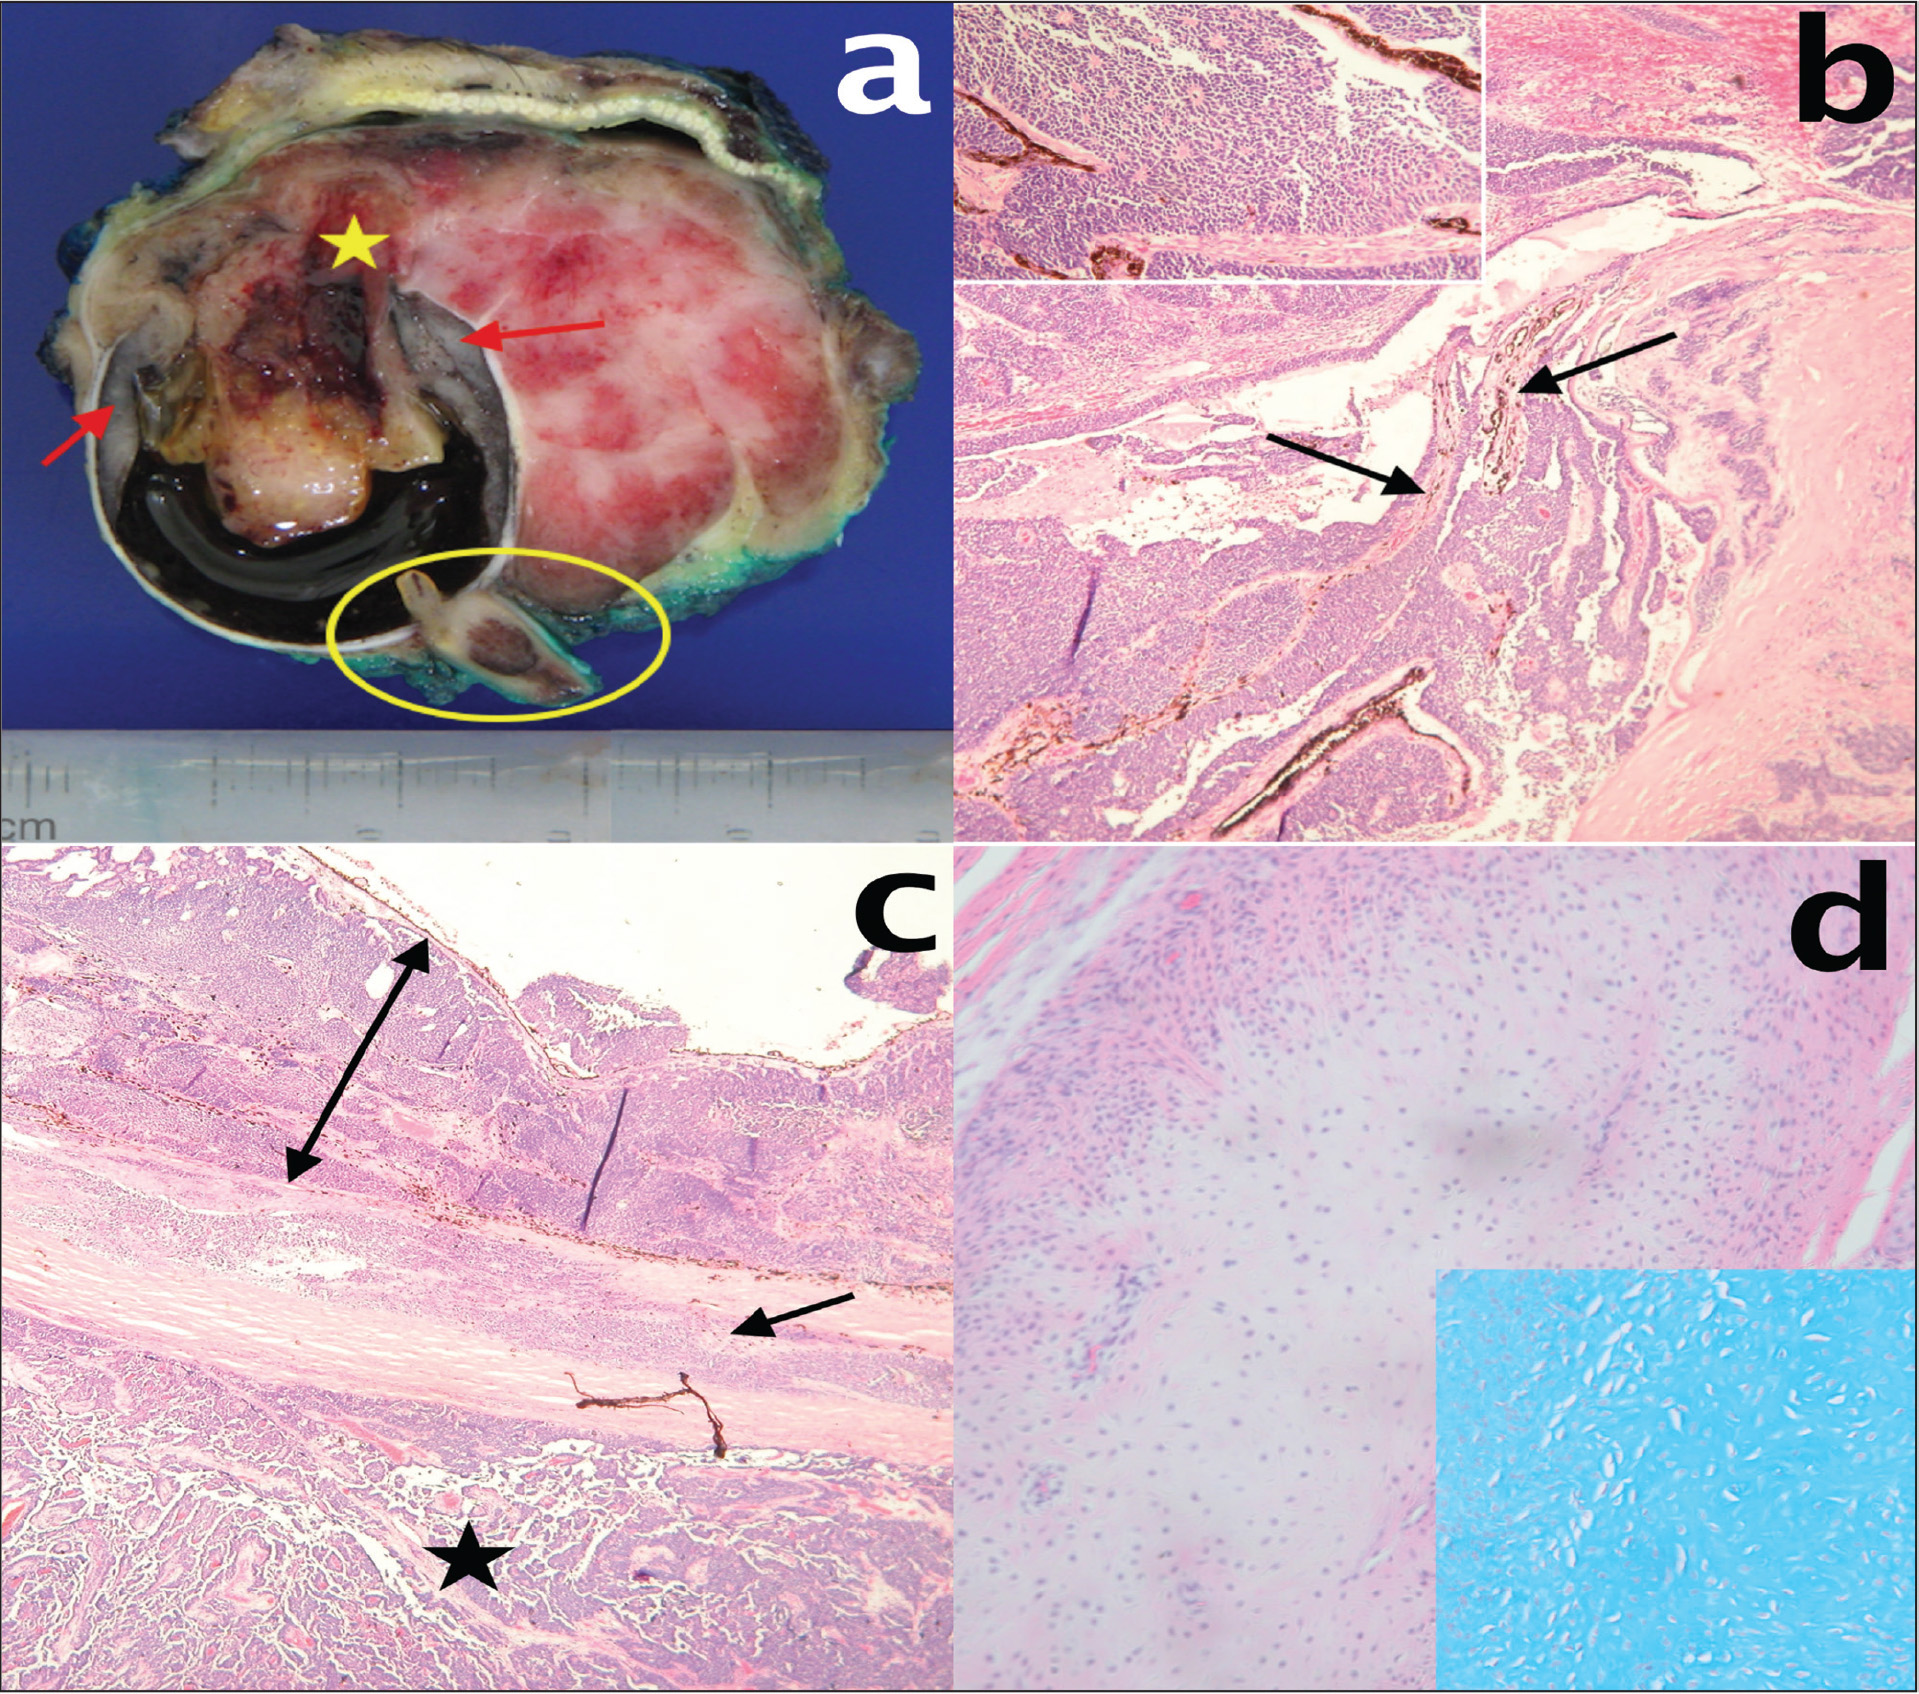 Histopathologic features of the medulloepithelioma. (A) Gross photograph showing grayish ciliary body tumor (arrow) extending into the anterior and posterior chambers. The tumor perforated through the anterior sclera (star) and extended into the orbit. Invasion of the optic nerve was found (circle). (B) Ciliary processes (arrows) surrounded by cords and sheets of hyperchromatic tumor cells. Inset shows formation of Flexner–Wintersteiner and Homer Wright rosettes (hematoxylin–eosin, original magnification ×100). (C) The retina and choroid filled with tumor cells (double-headed arrow). The tumor invaded through the sclera (arrow) and extended to the outside of the globe (star) (hematoxylin–eosin, original magnification ×40). (D) Section showing cartilaginous differentiation (hematoxylin–eosin, original magnification ×100) and inset demonstrating that the section is stained positively with alcian blue (hematoxylin–eosin, original magnification ×200).